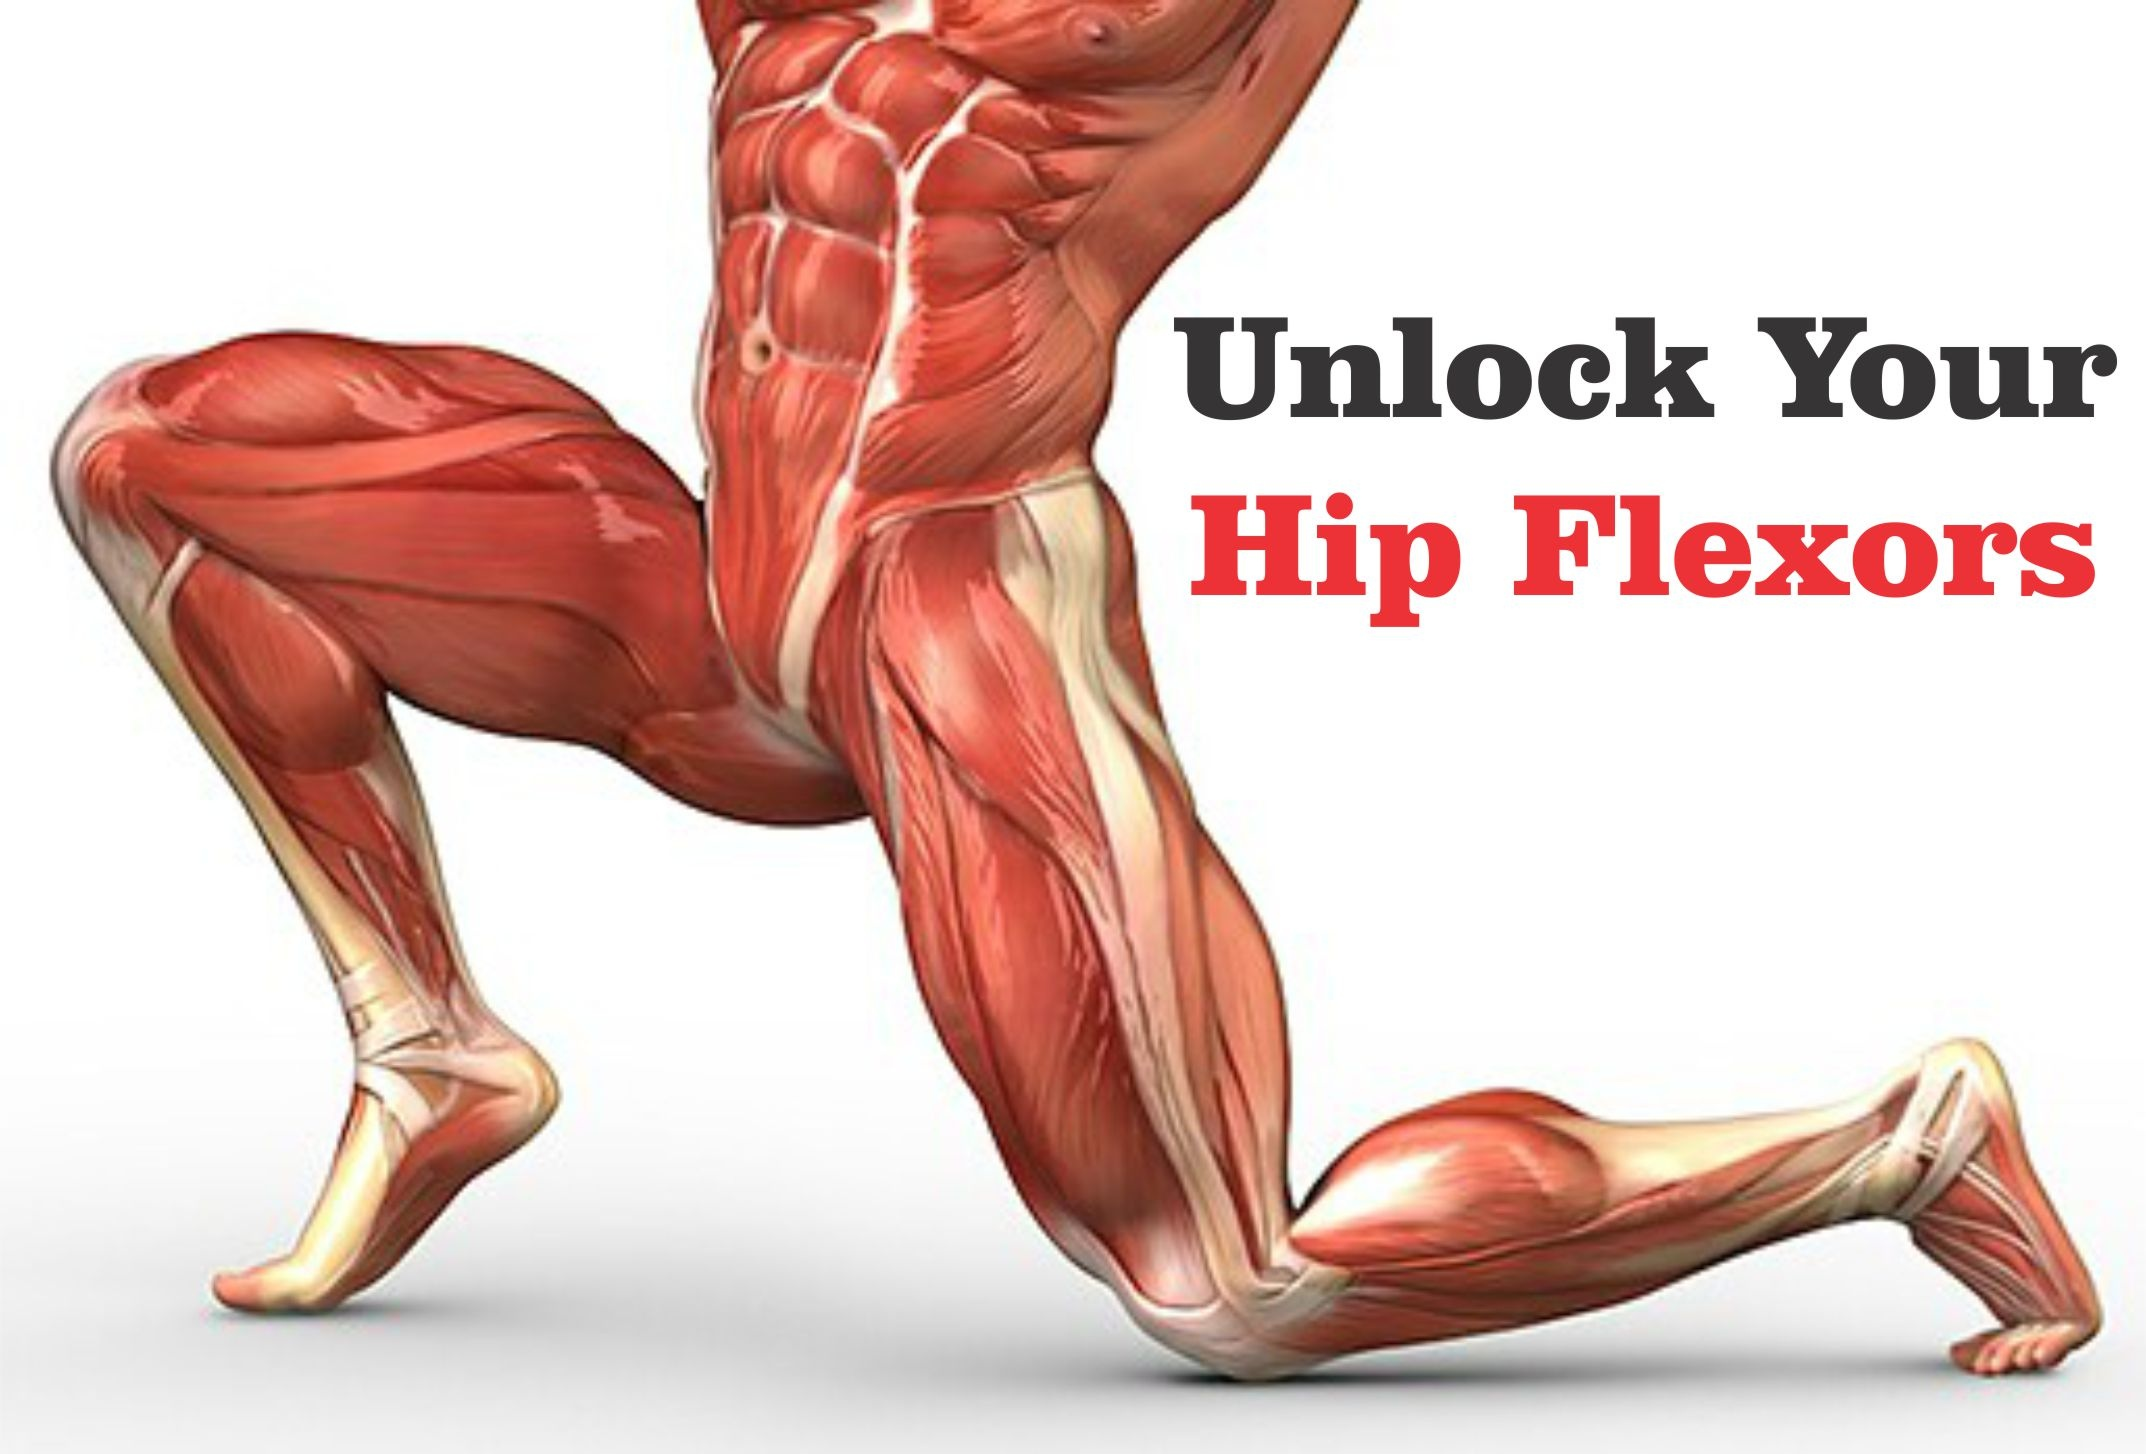 Active Kneeling Hip Flexor Stretch